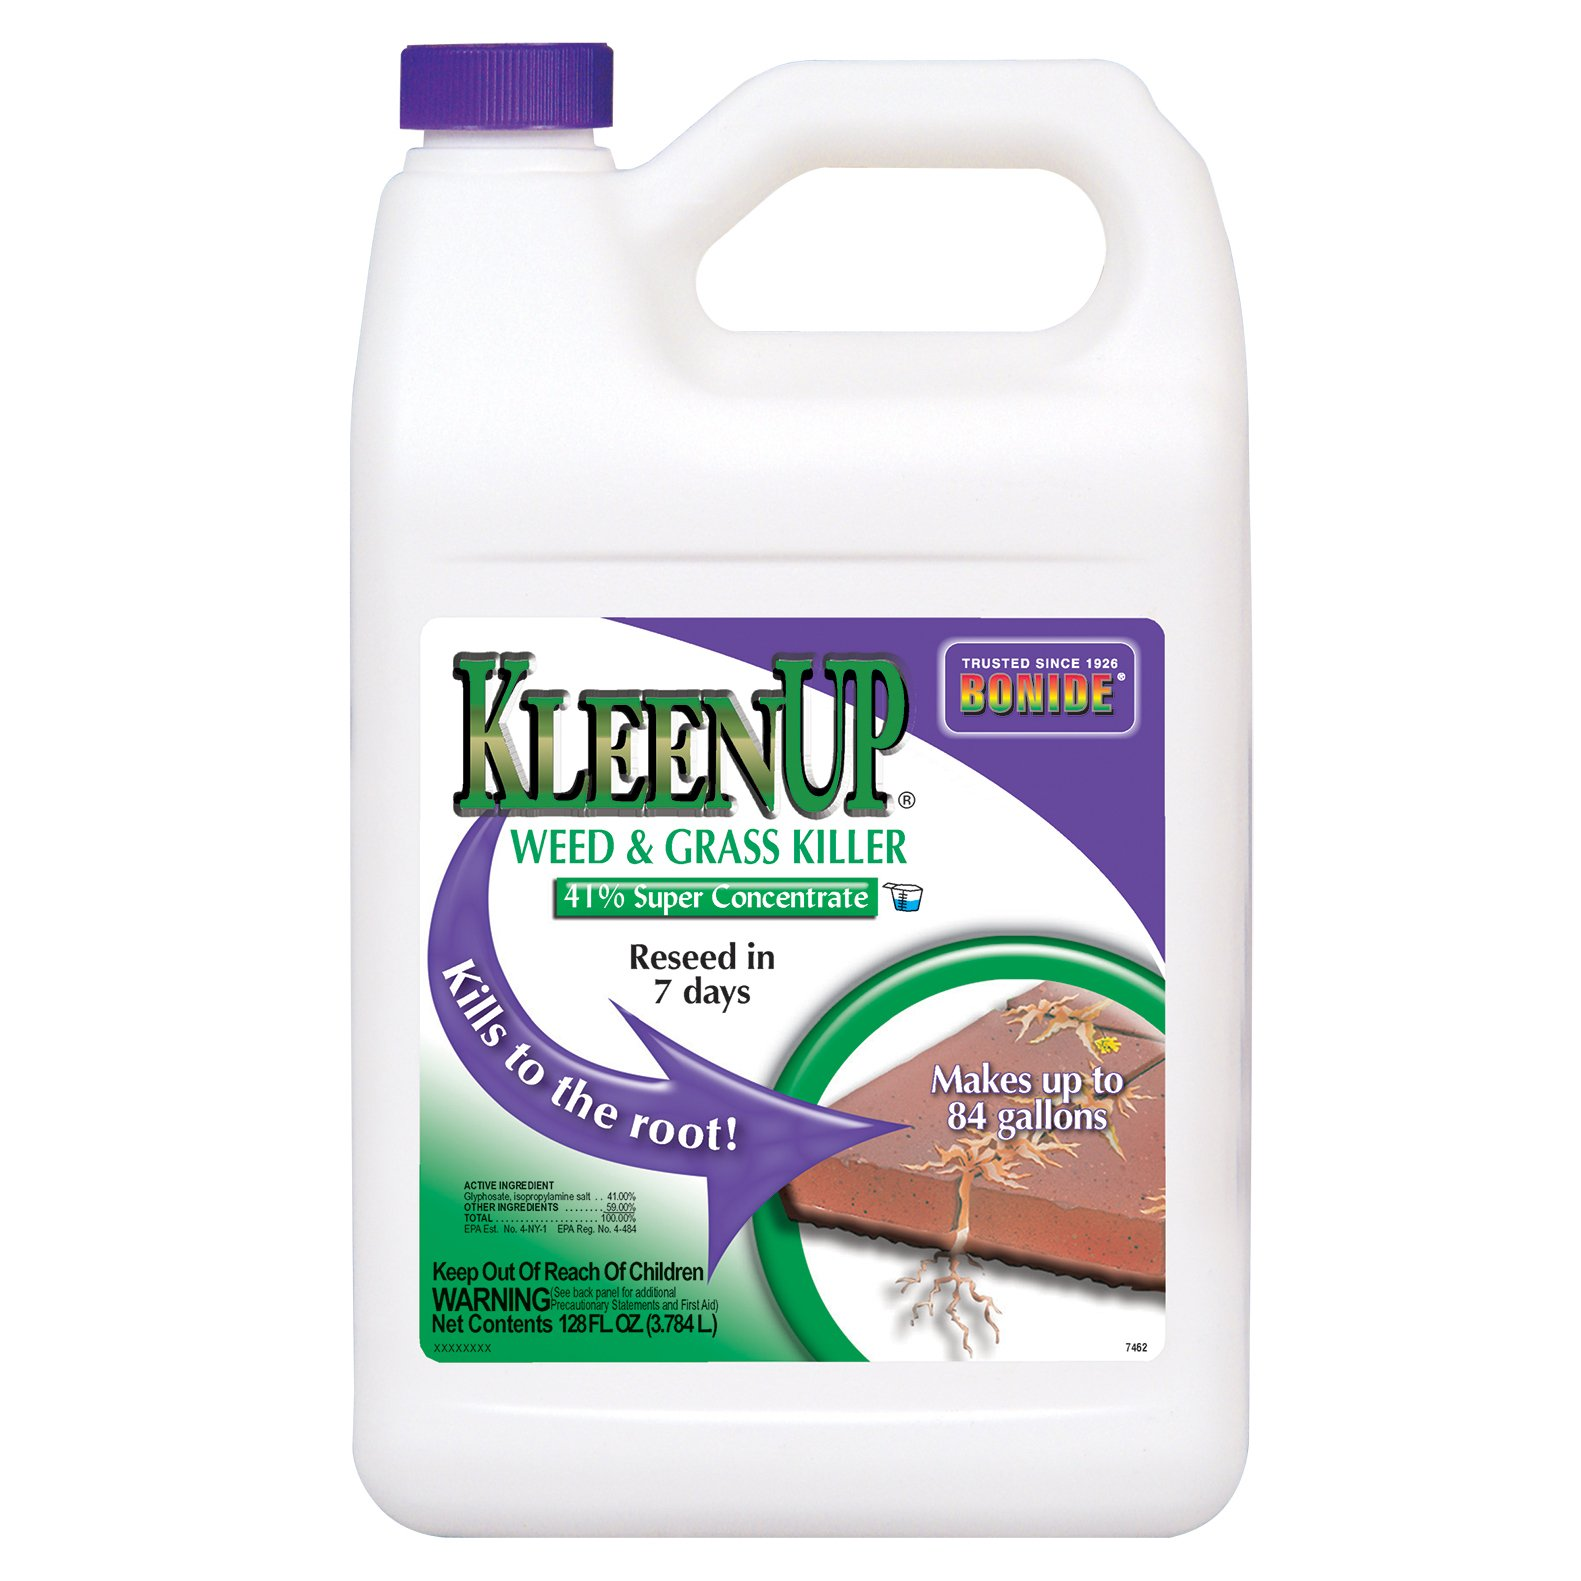 Bonide 7462 Concentrate KleenUp Weed Killer